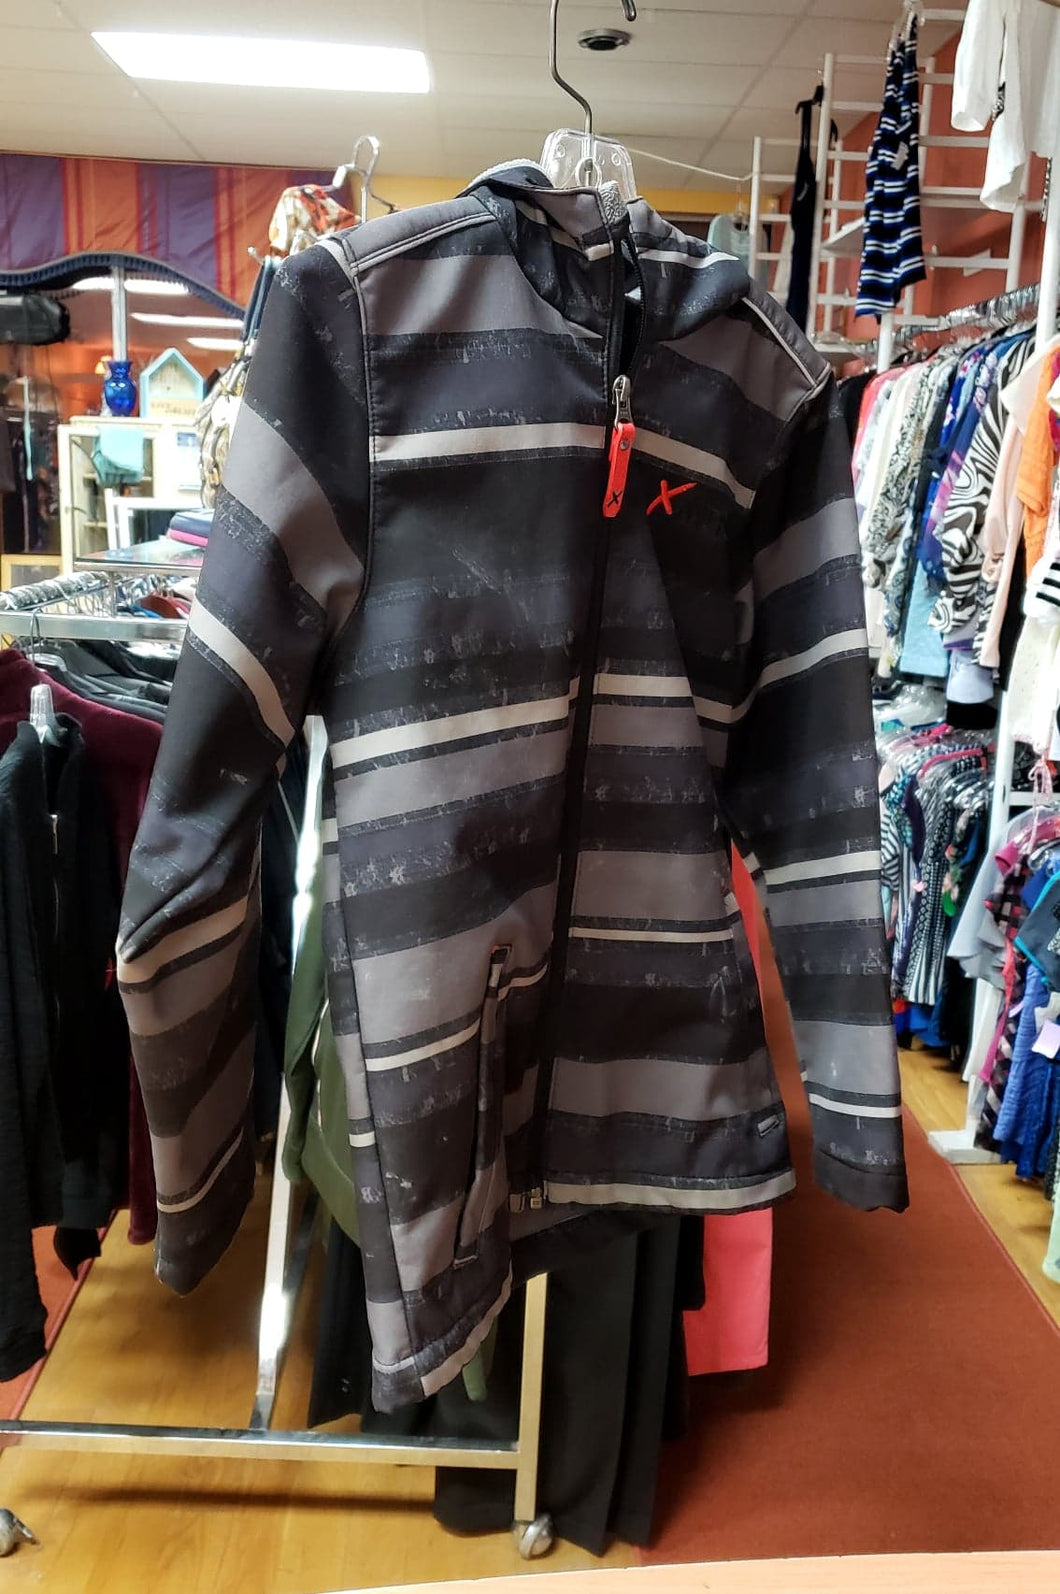 XMTN Size 7/8 Fall Hooded Jacket